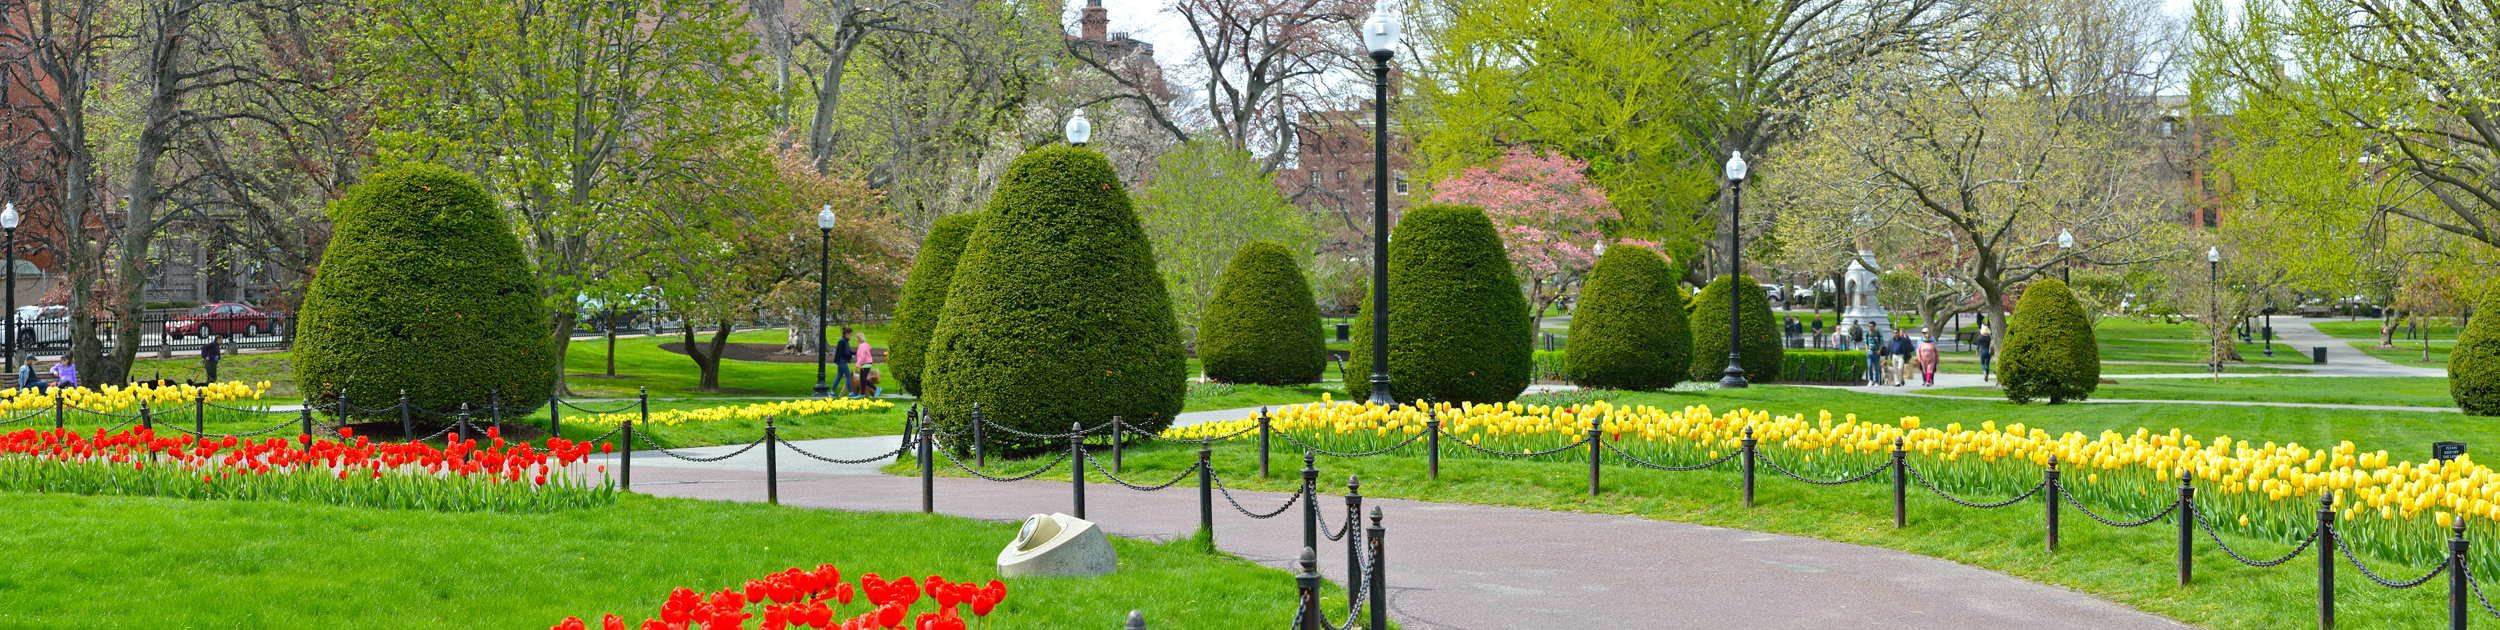 flower garden in Boston showing yellow and red flowers along a walkway